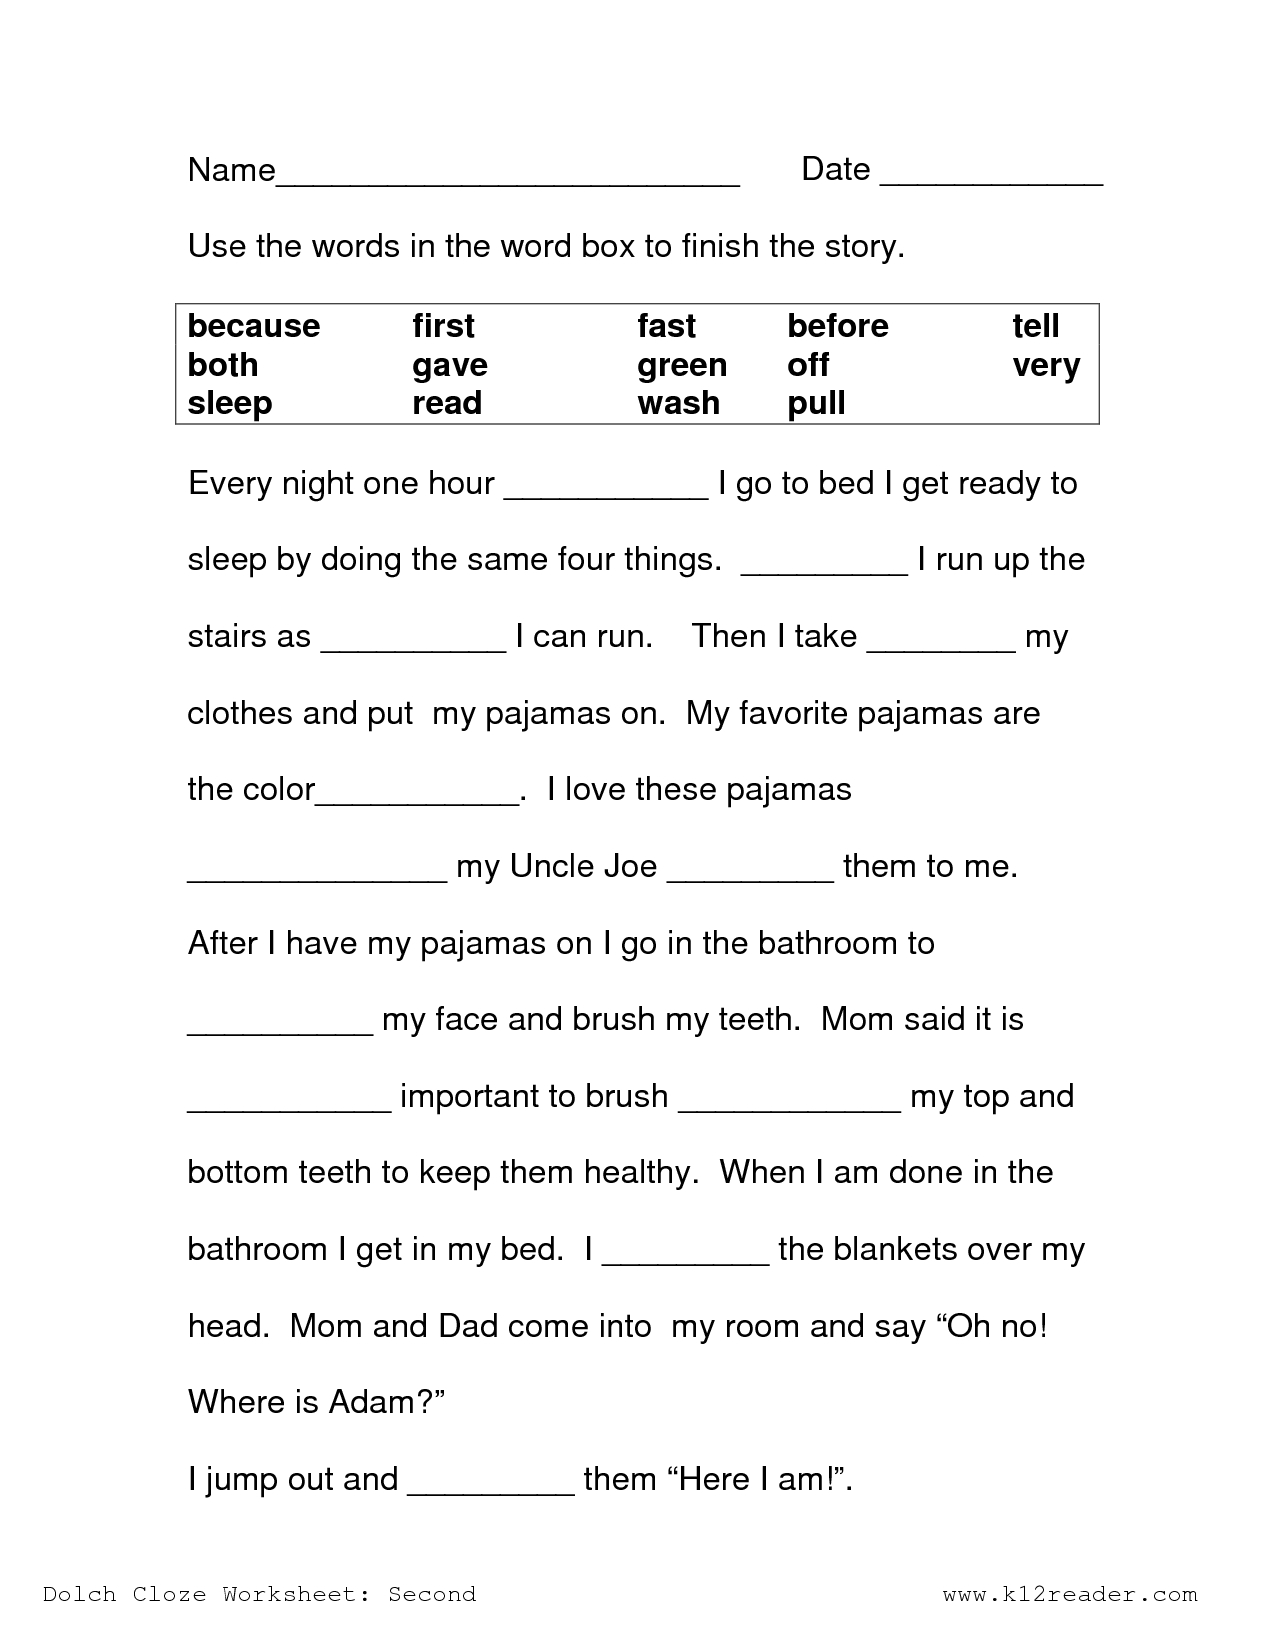 Image Result For Free Cloze Reading Passages 2Nd Grade | Printables - Free Printable Science Worksheets For 2Nd Grade